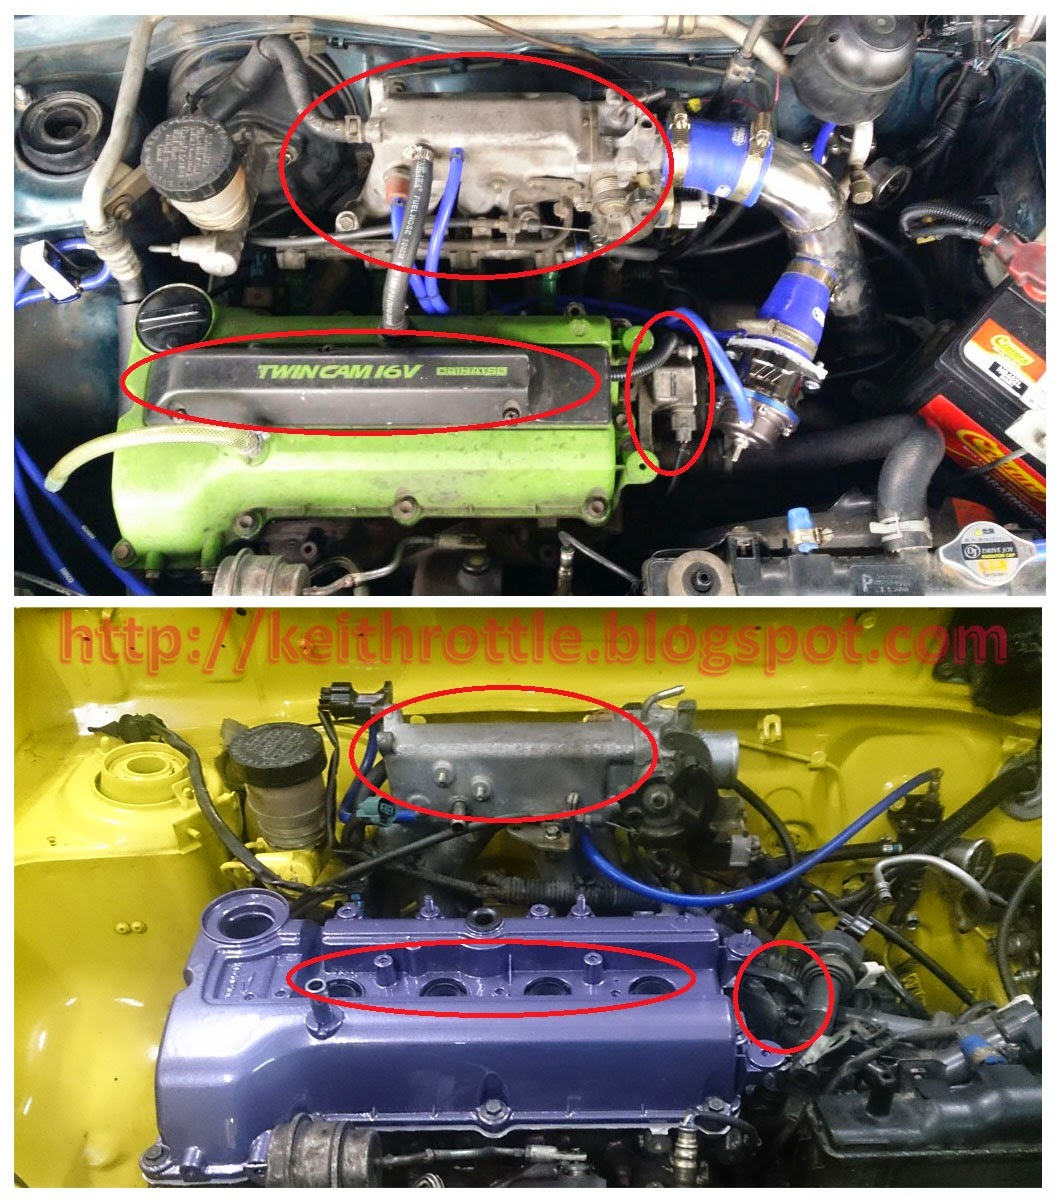 medium resolution of jb jl vs jb det daihatsu engine comparison